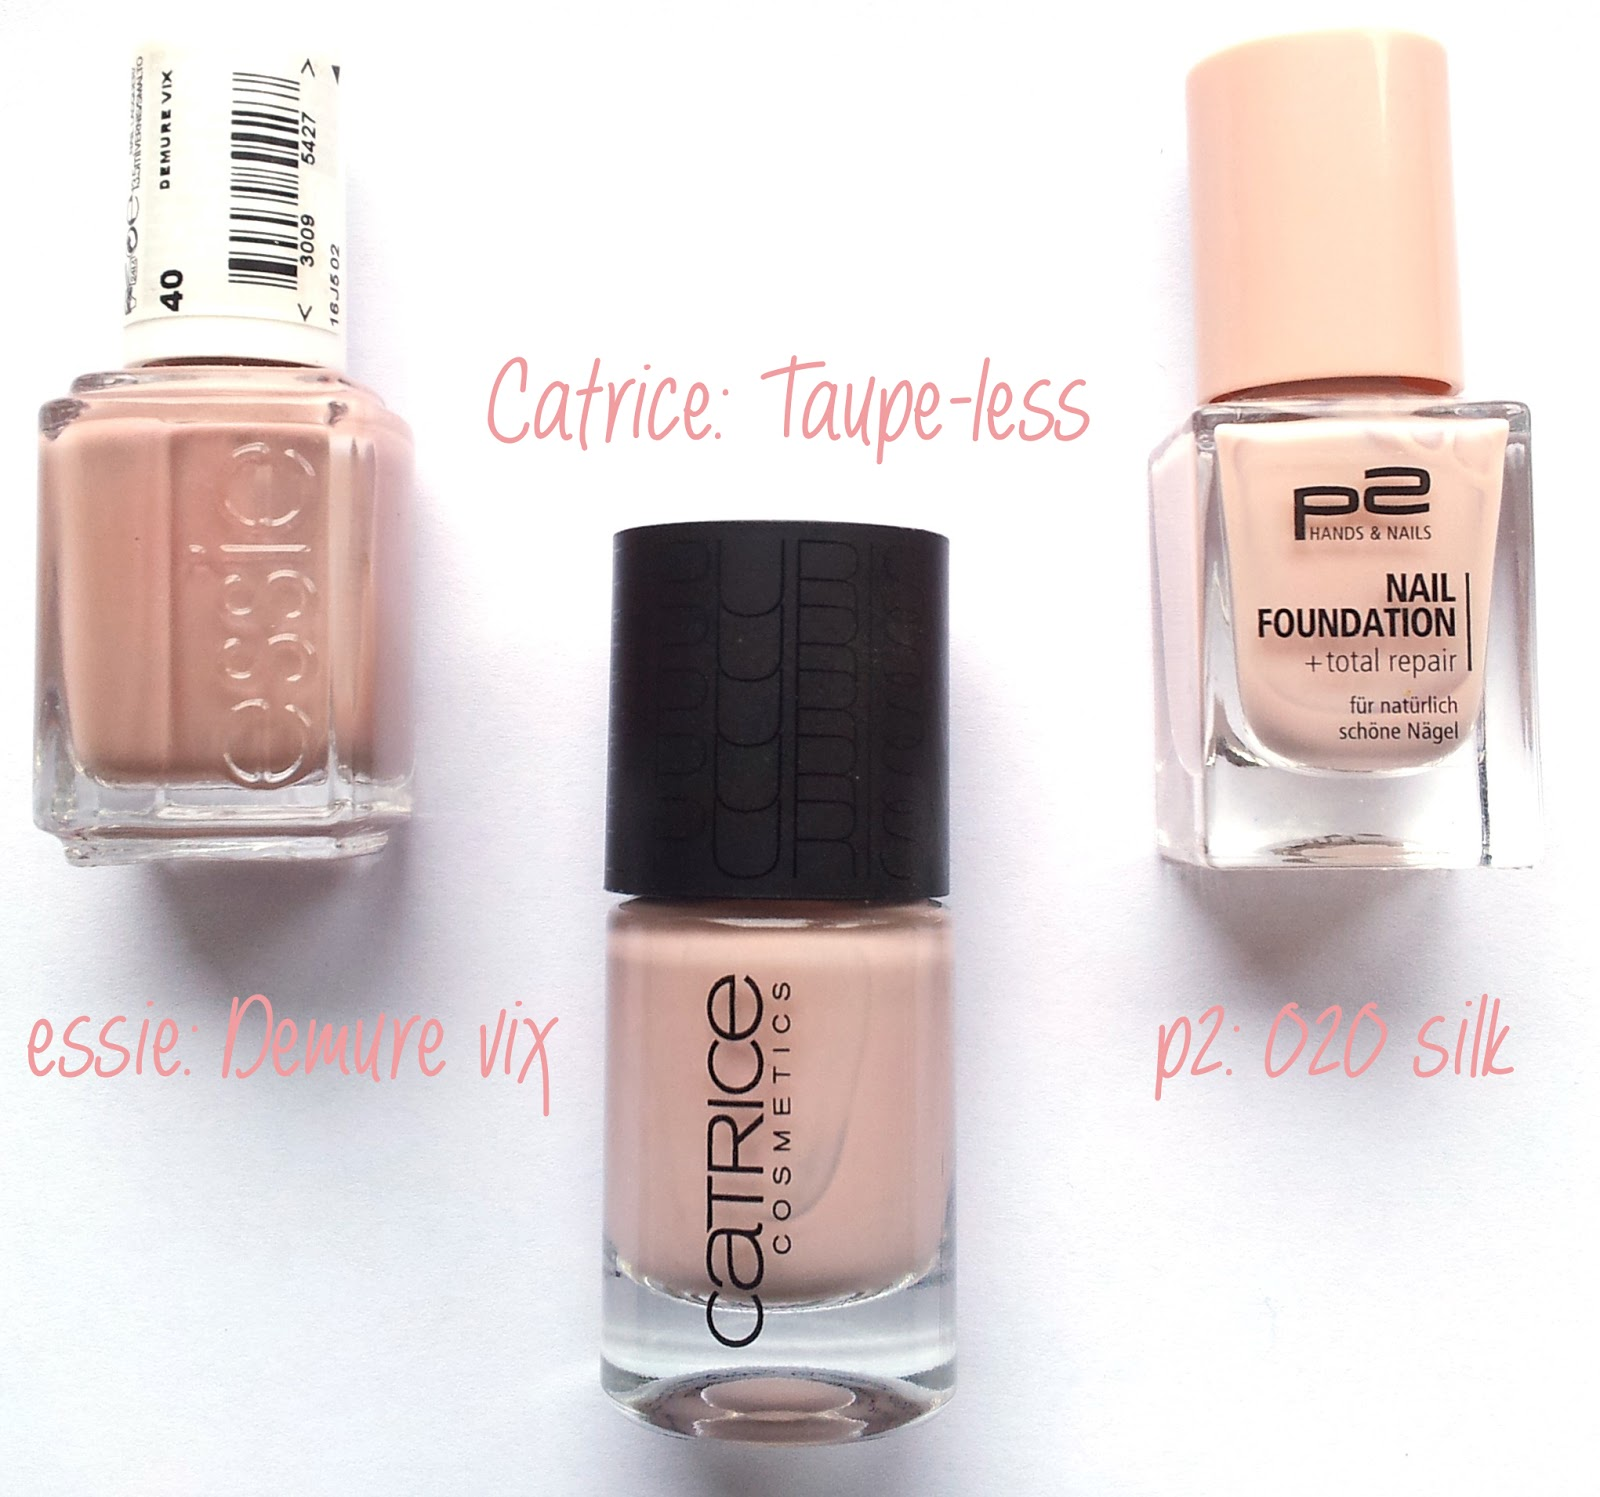 Catrice Nude purism nail laquer C01 Taupe-less Dupes essie p2